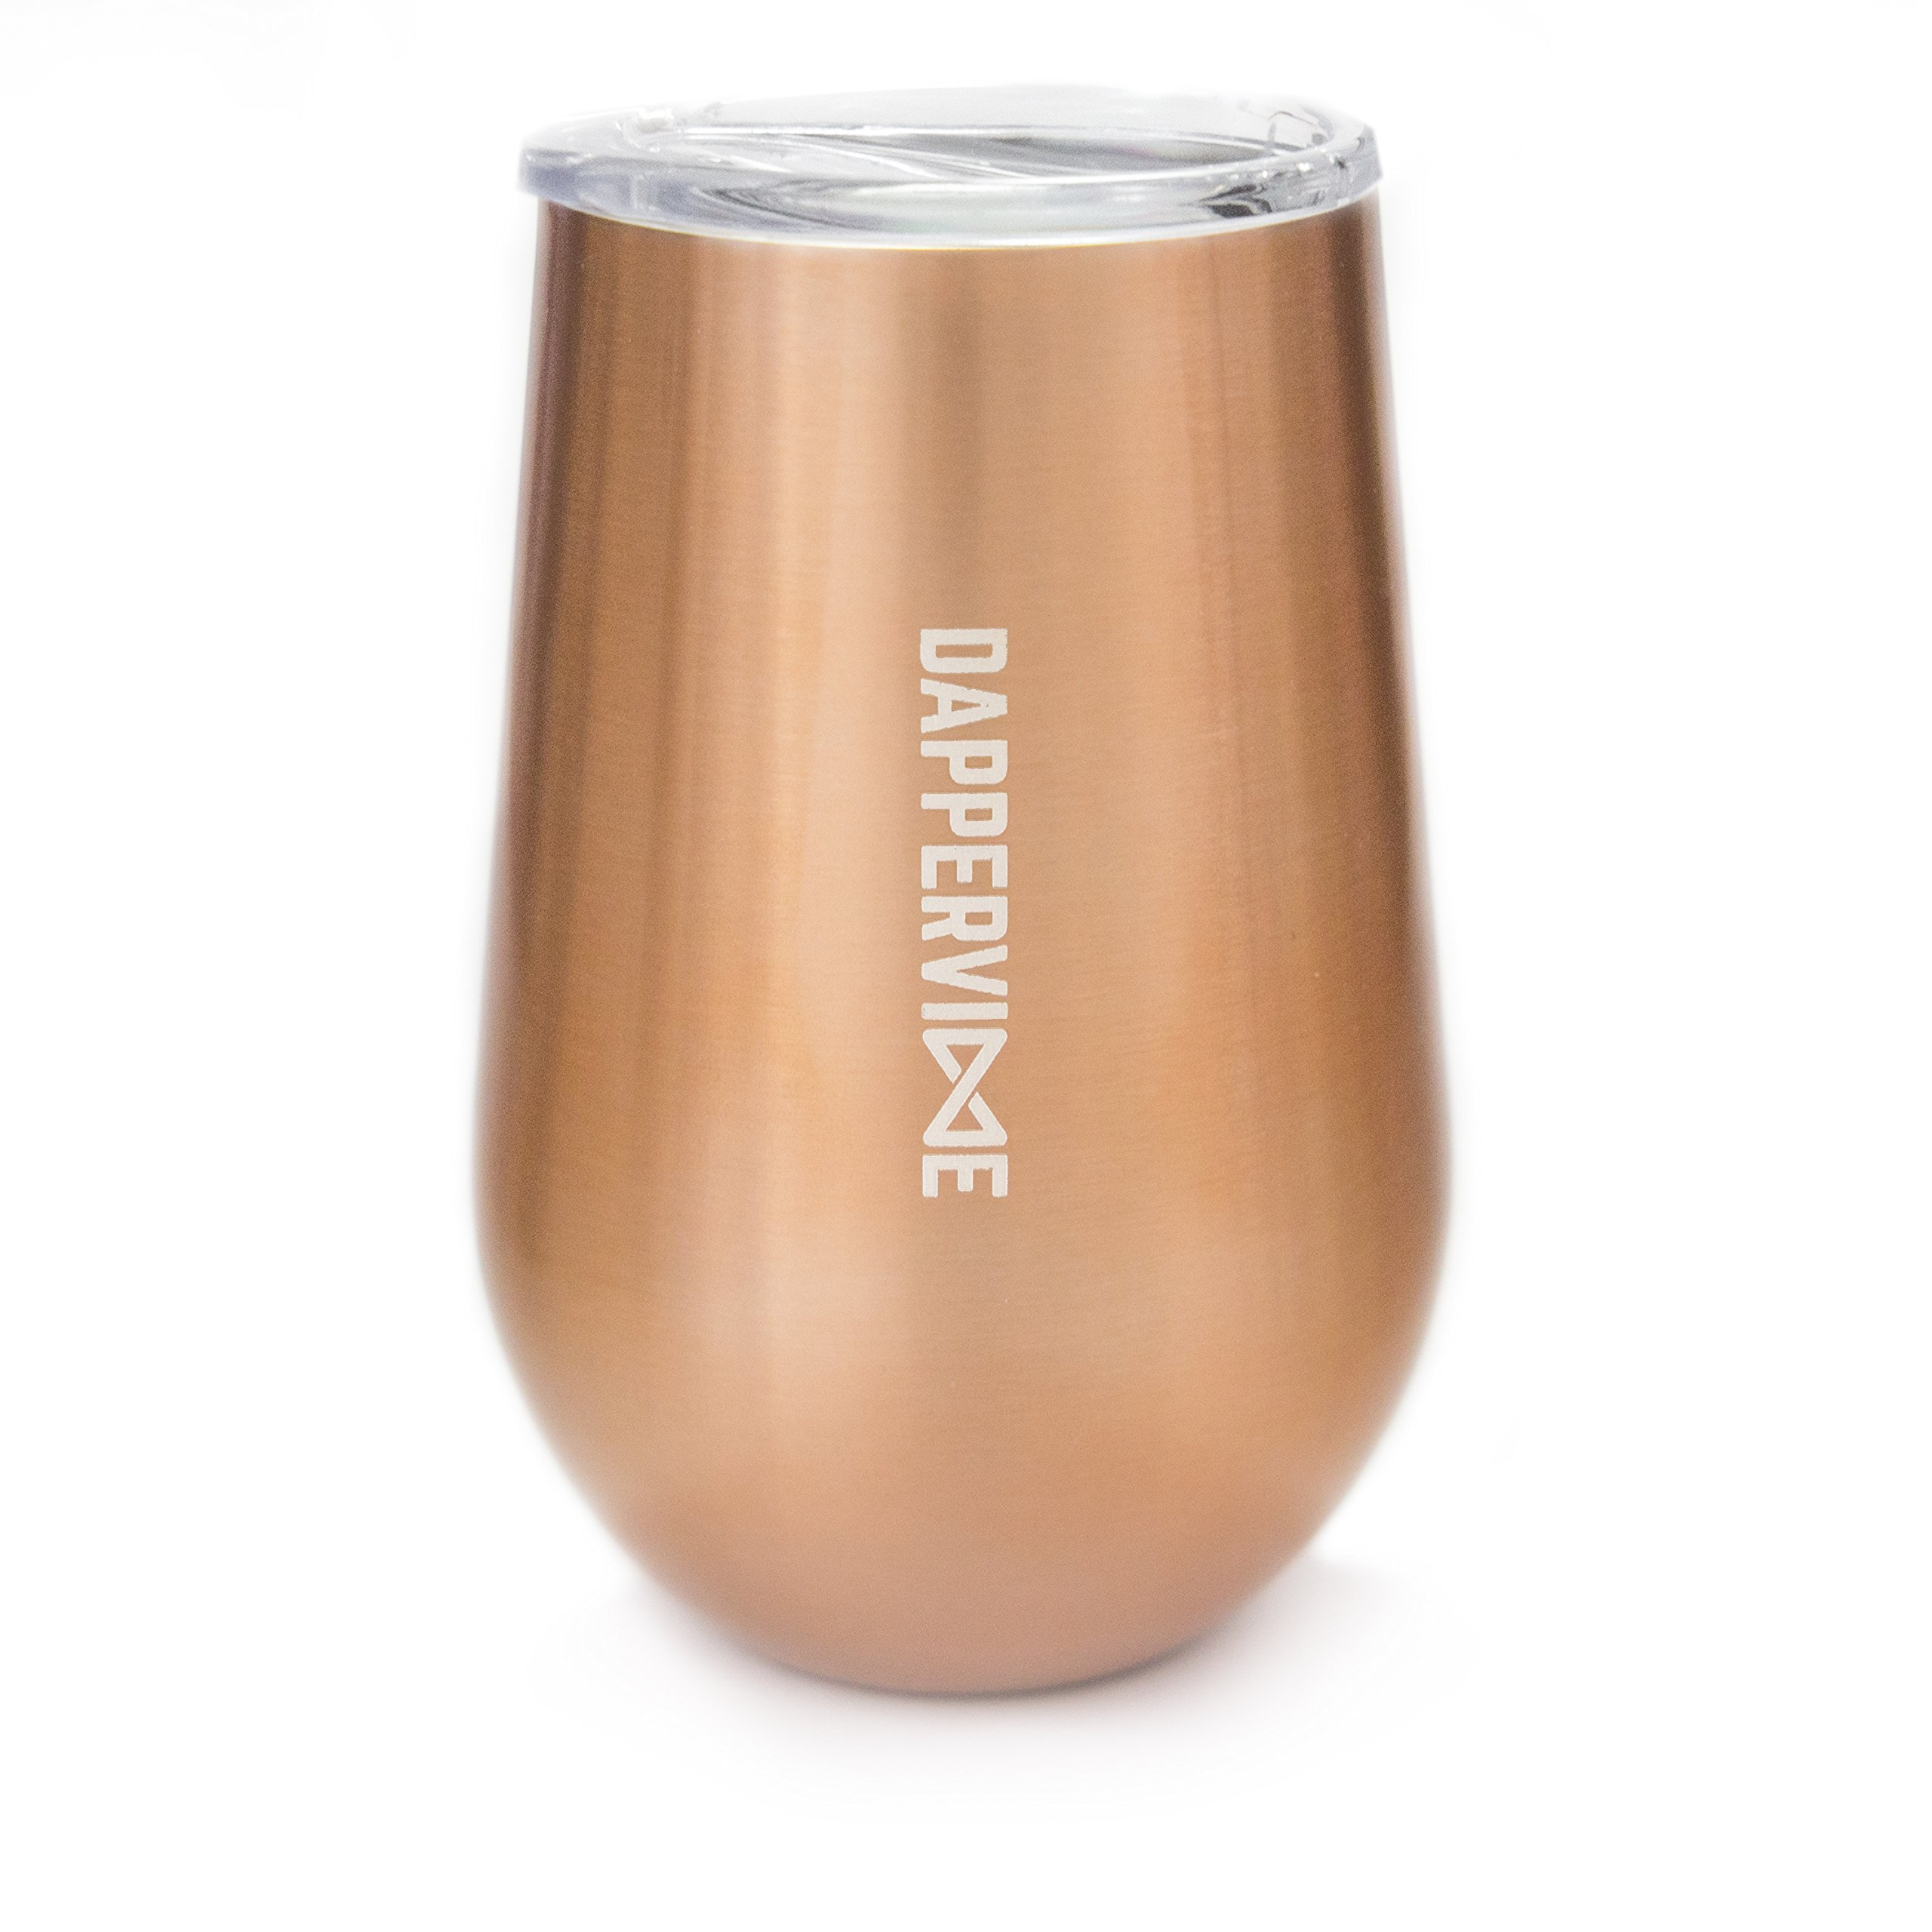 Stainless Steel Wine Tumbler with Lid by DAPPERVINE, stemless wine glass, unbreakable, shatterproof, double wall insulated, great for wine, coffee and tea, perfect 7th anniversary gift (copper, 12oz)